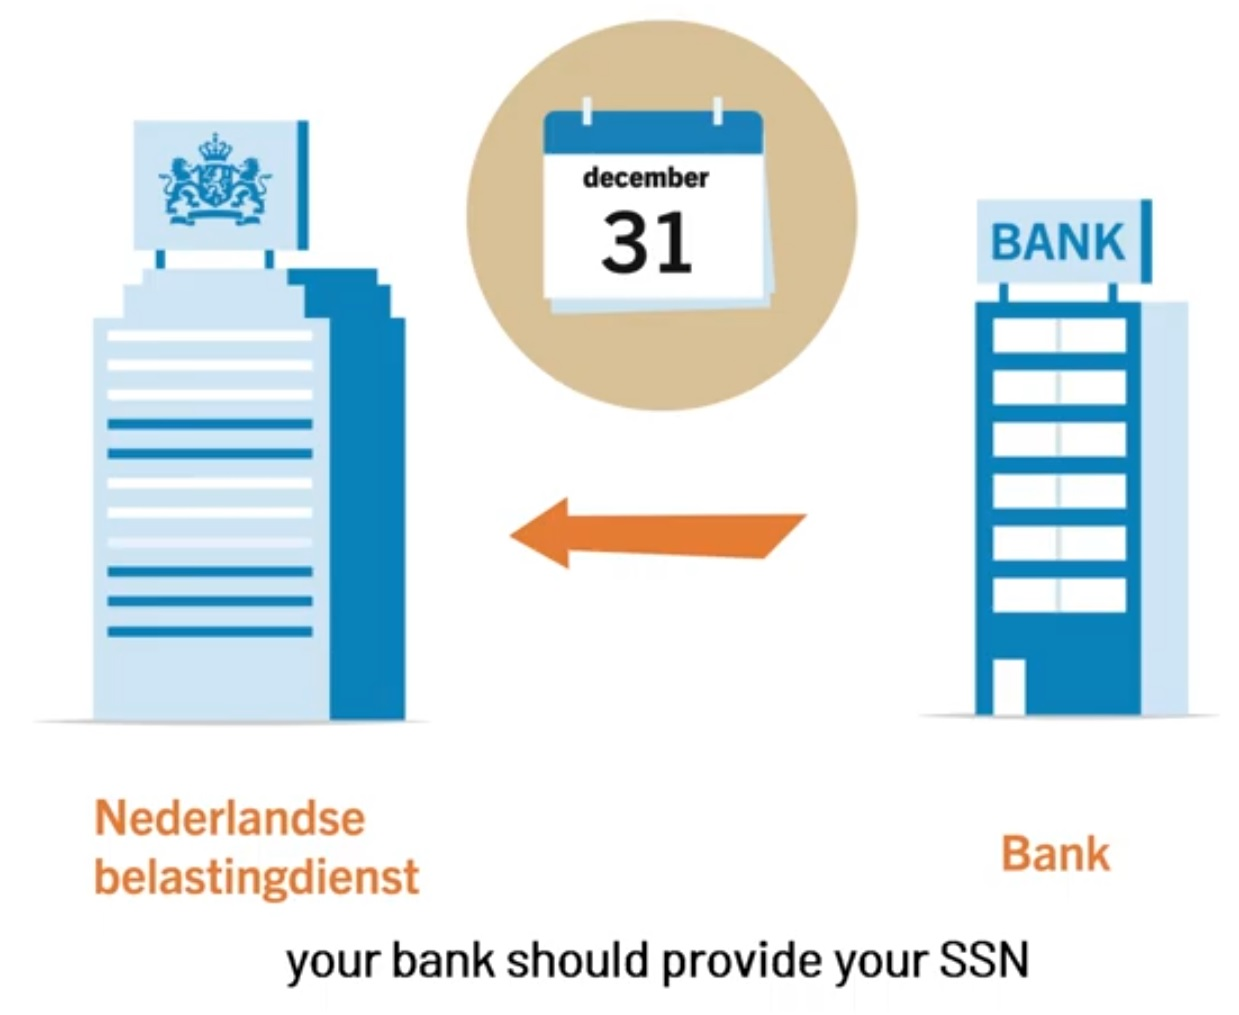 Your bank should provide your SSN